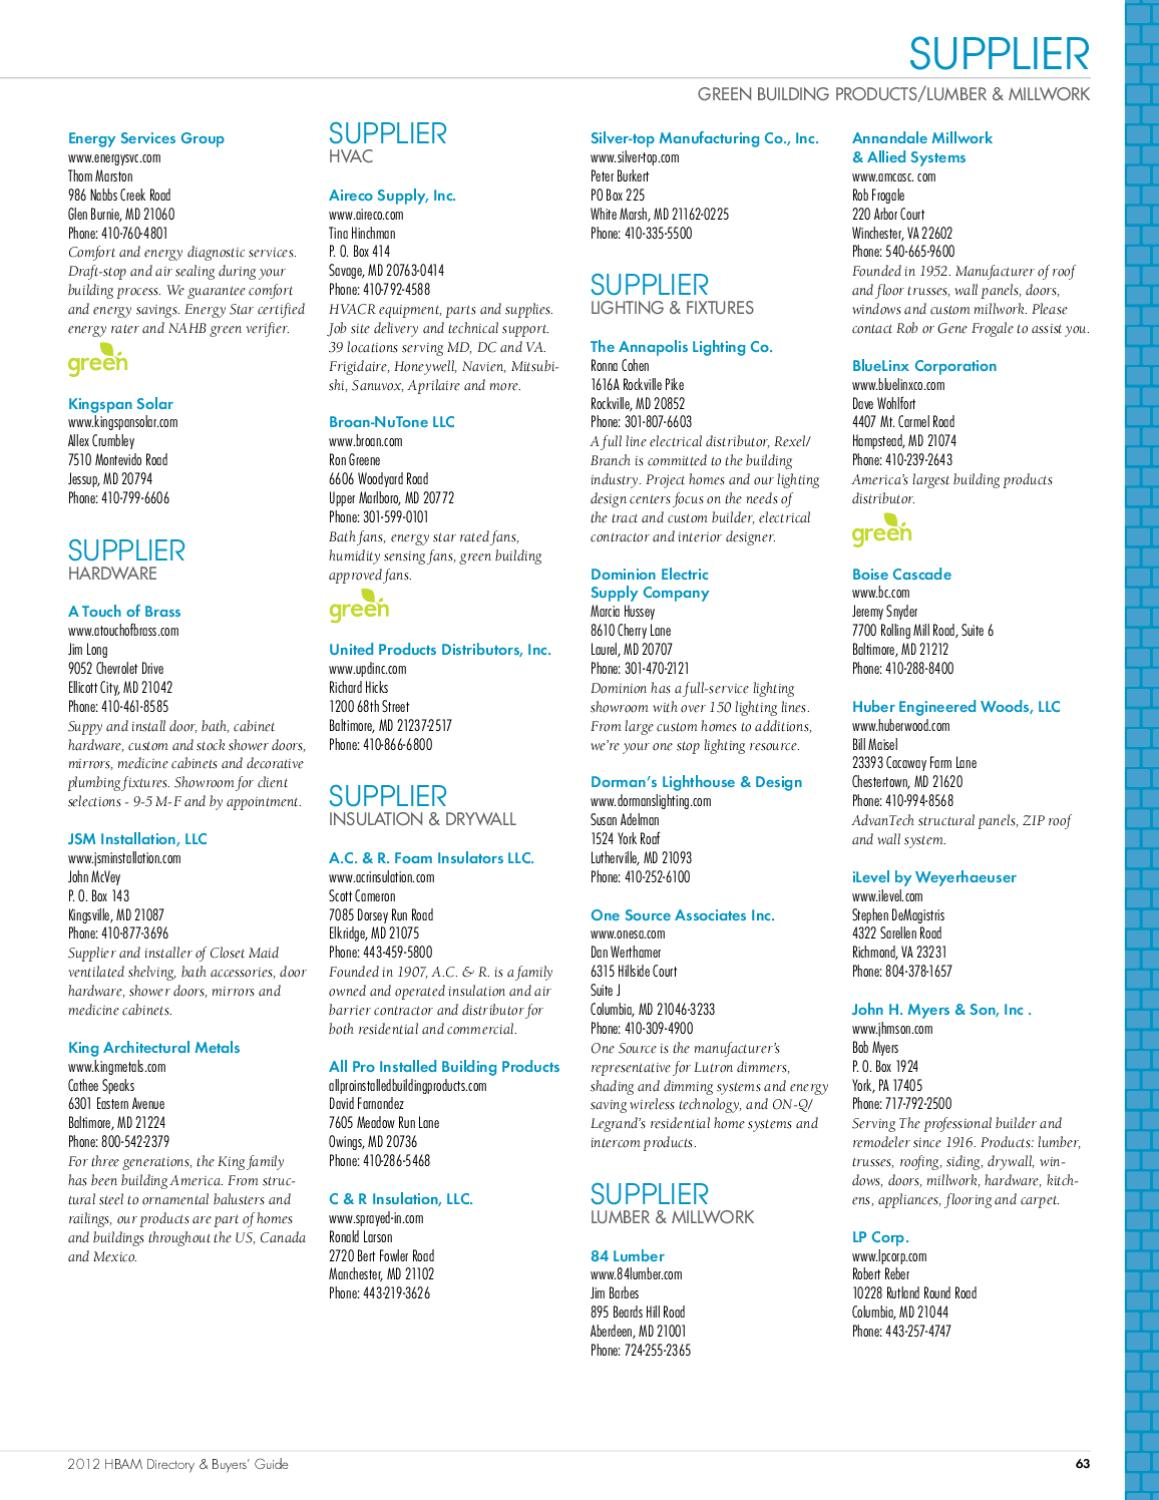 2012 HBAM Directory and Buyers' Guide by Maryland Building